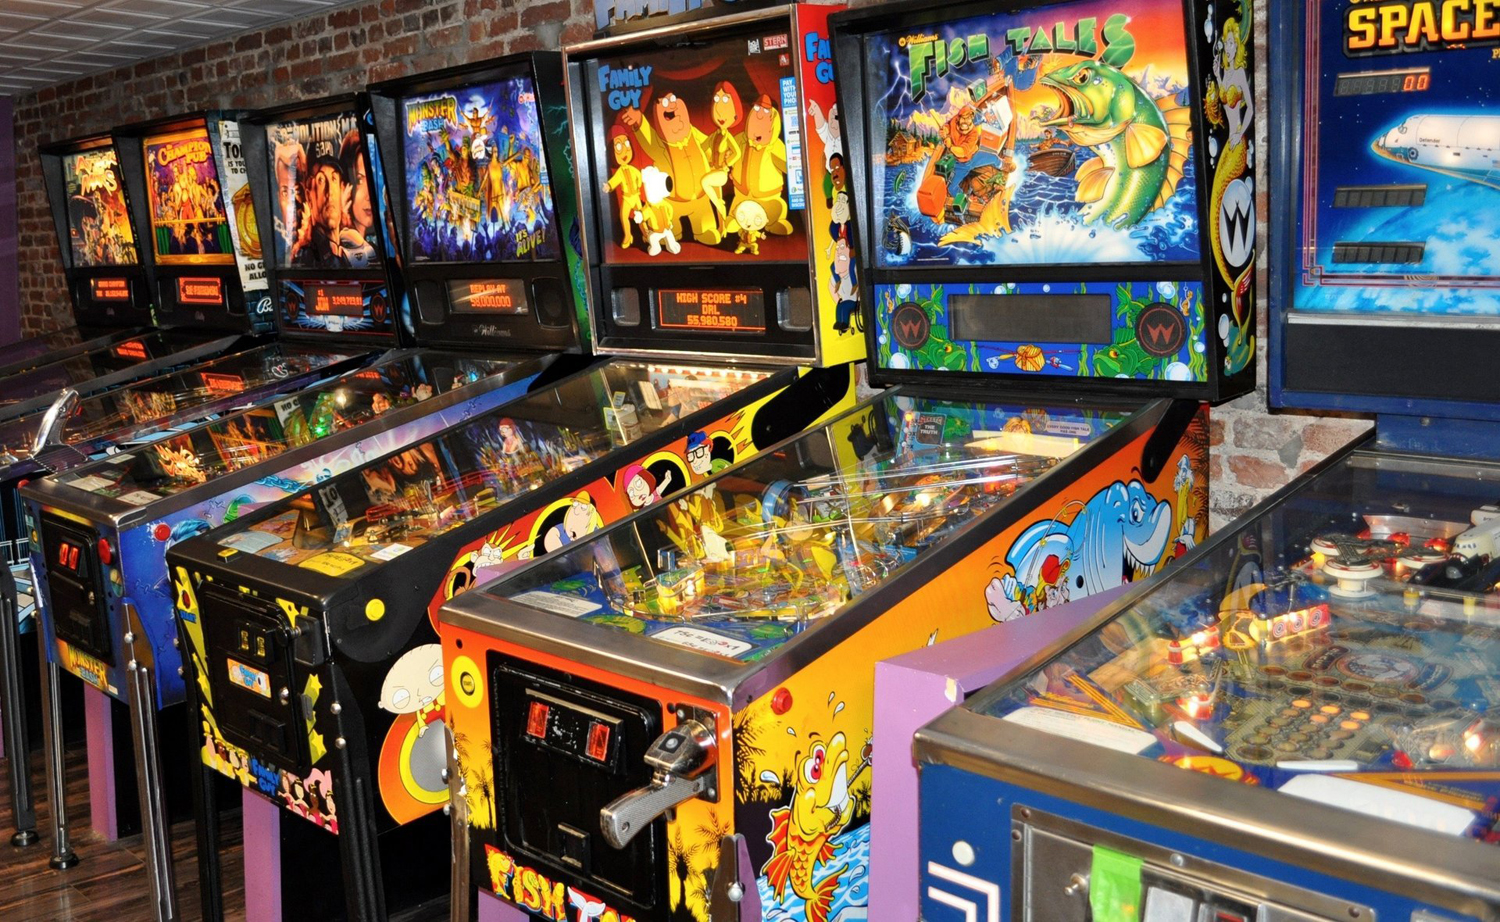 The Kickback Pinball Cafe in Lawrenceville features an assortment of more than 20 pinball machines for visitors to play.